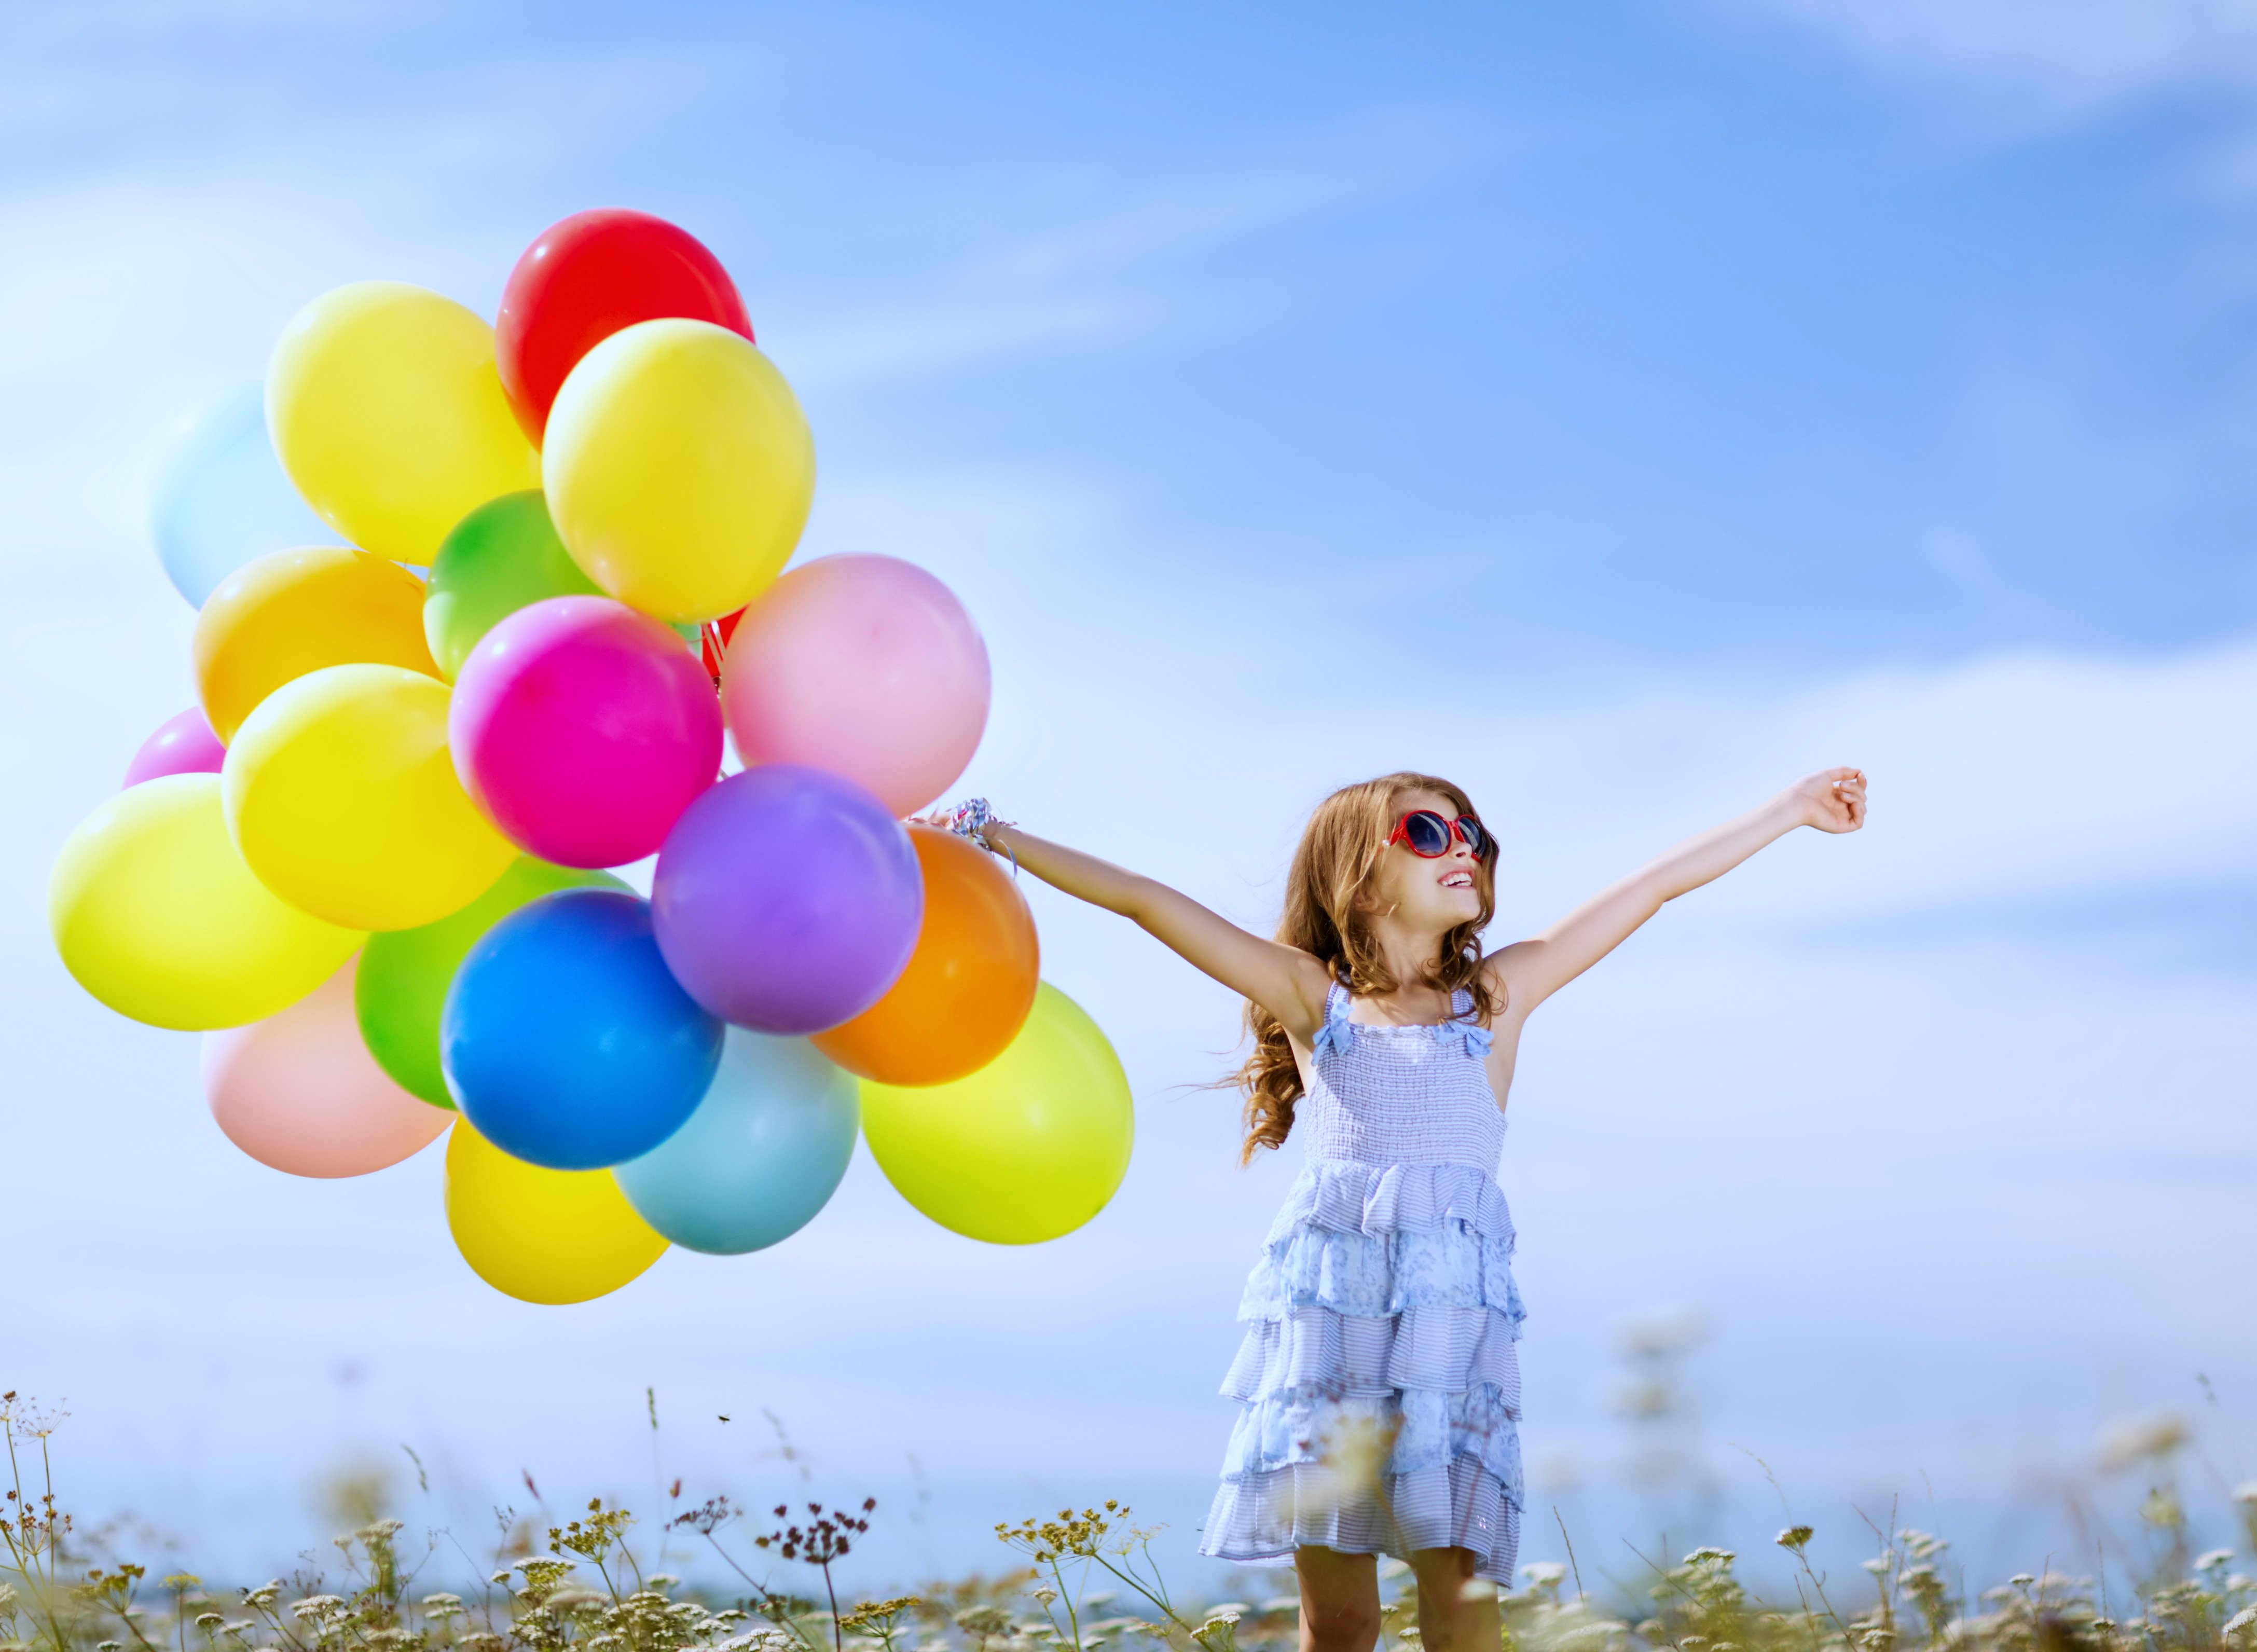 kids children childhood games playing joy fun happy life nature landscapes earth little colors sky sunny - Spring Pictures For Children